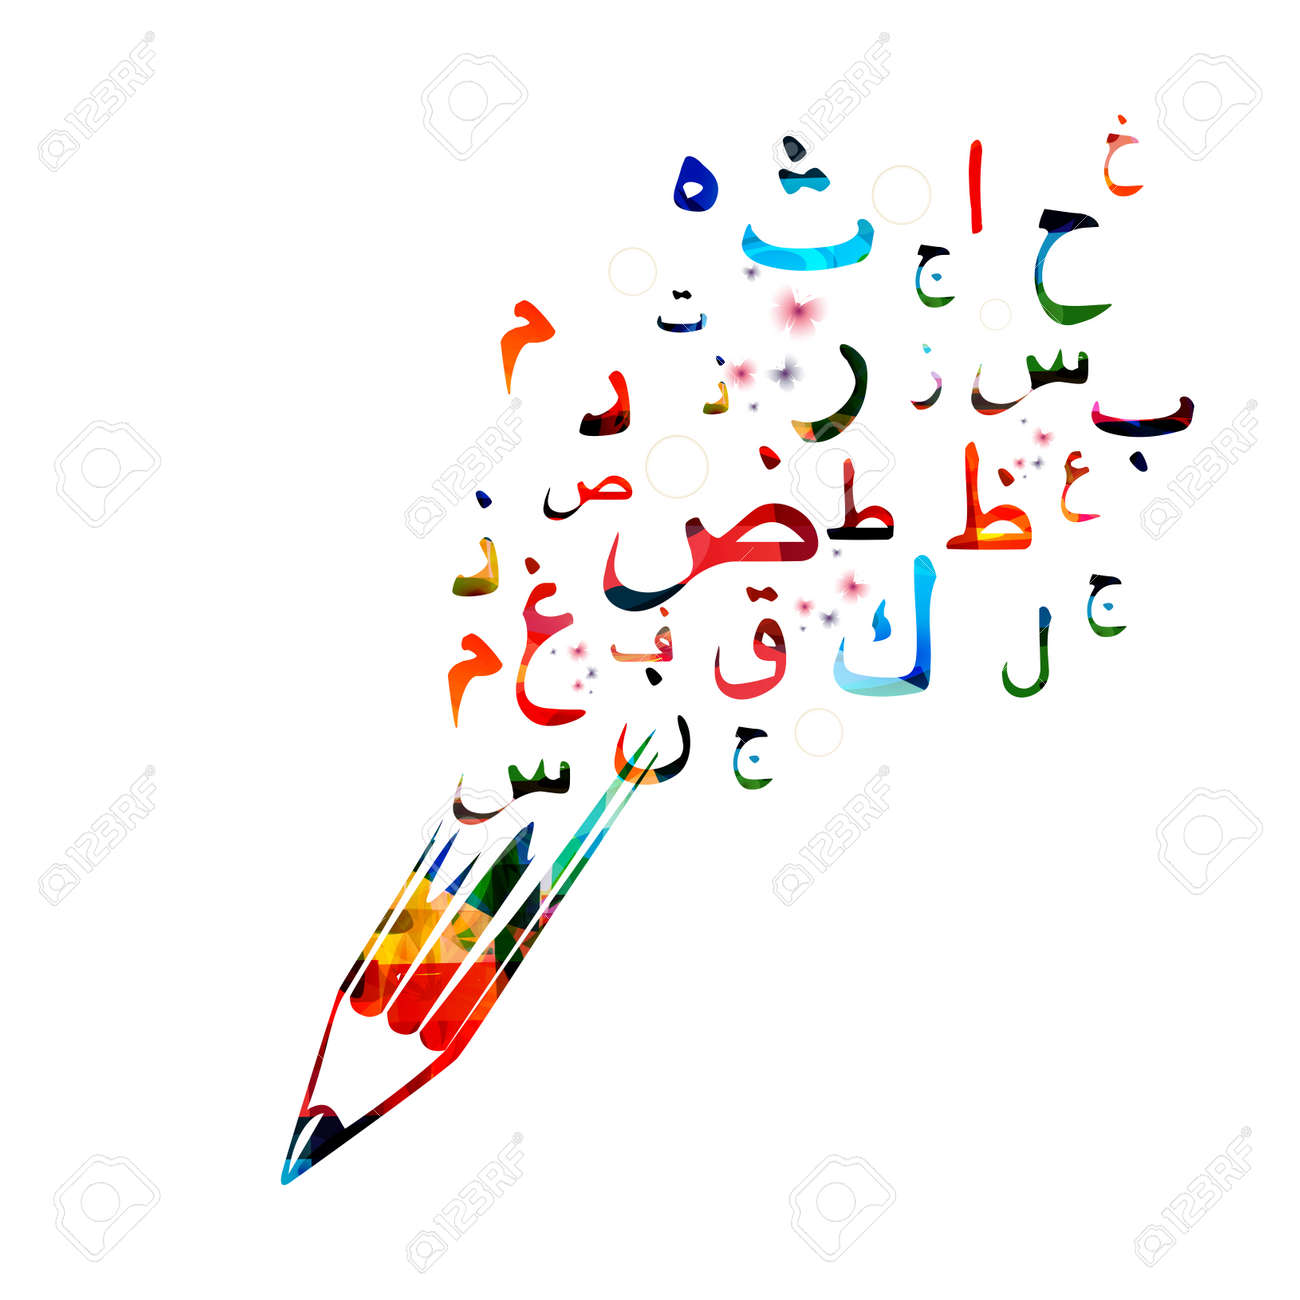 Arabic Islamic calligraphy symbols vector illustration. Colorful Arabic alphabet text design, Arabic letters and typography background, education concept, creative writing and creation, storytelling - 64461904